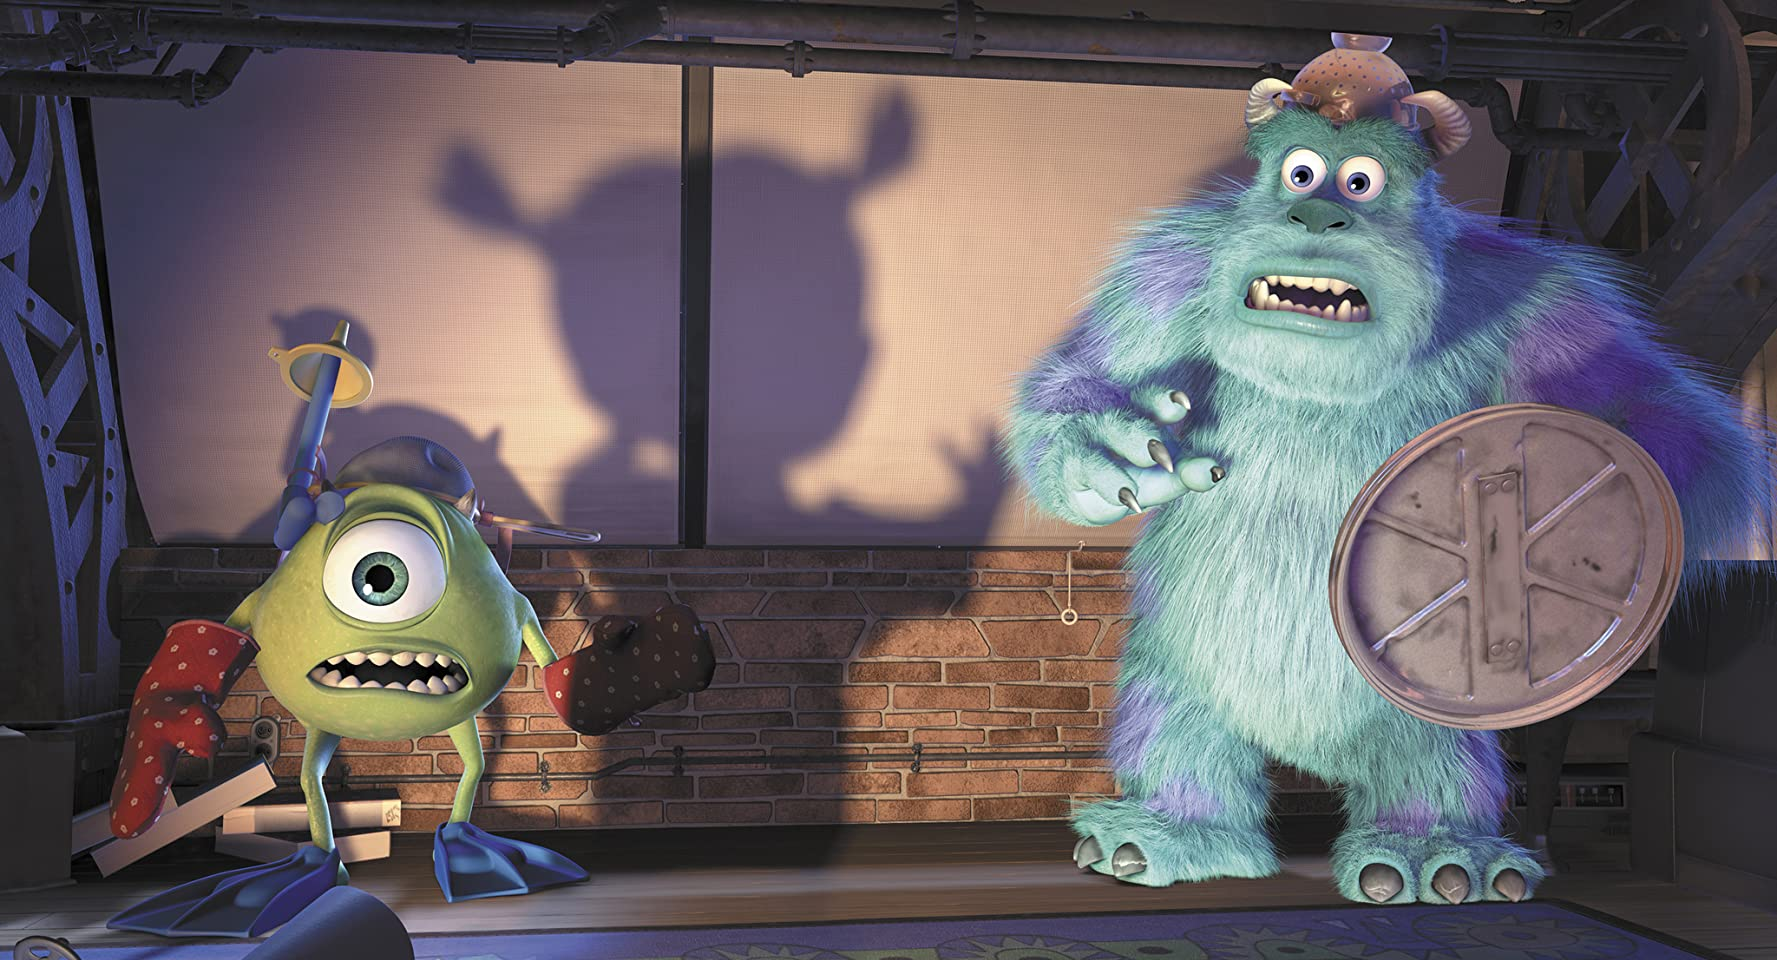 Billy Crystal and John Goodman in Monsters, Inc. (2001)